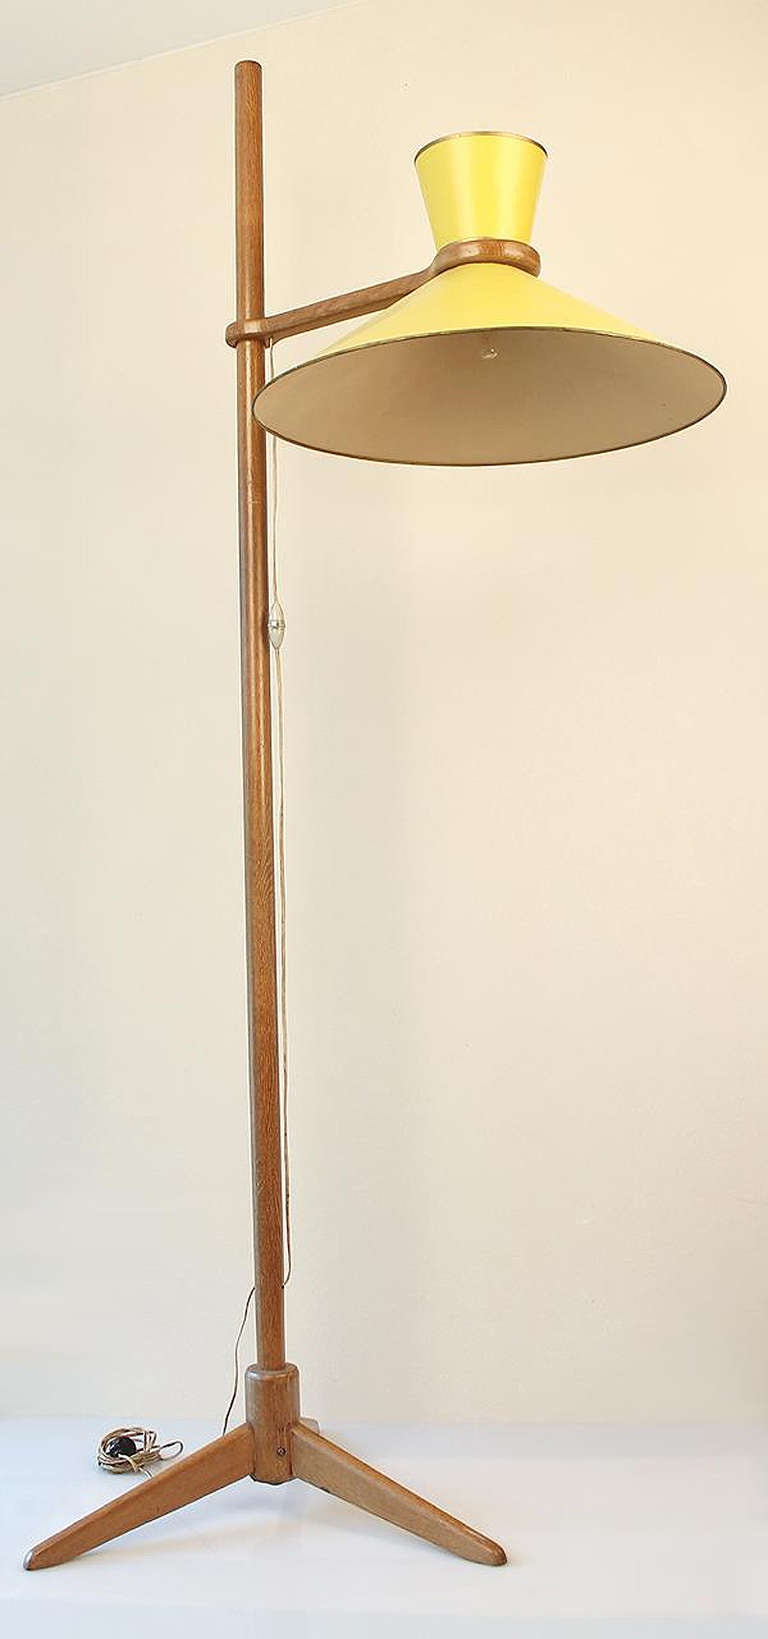 1950 Jacques Hauville Floor Lamp Luminaire 800 For Sale at 1stdibs